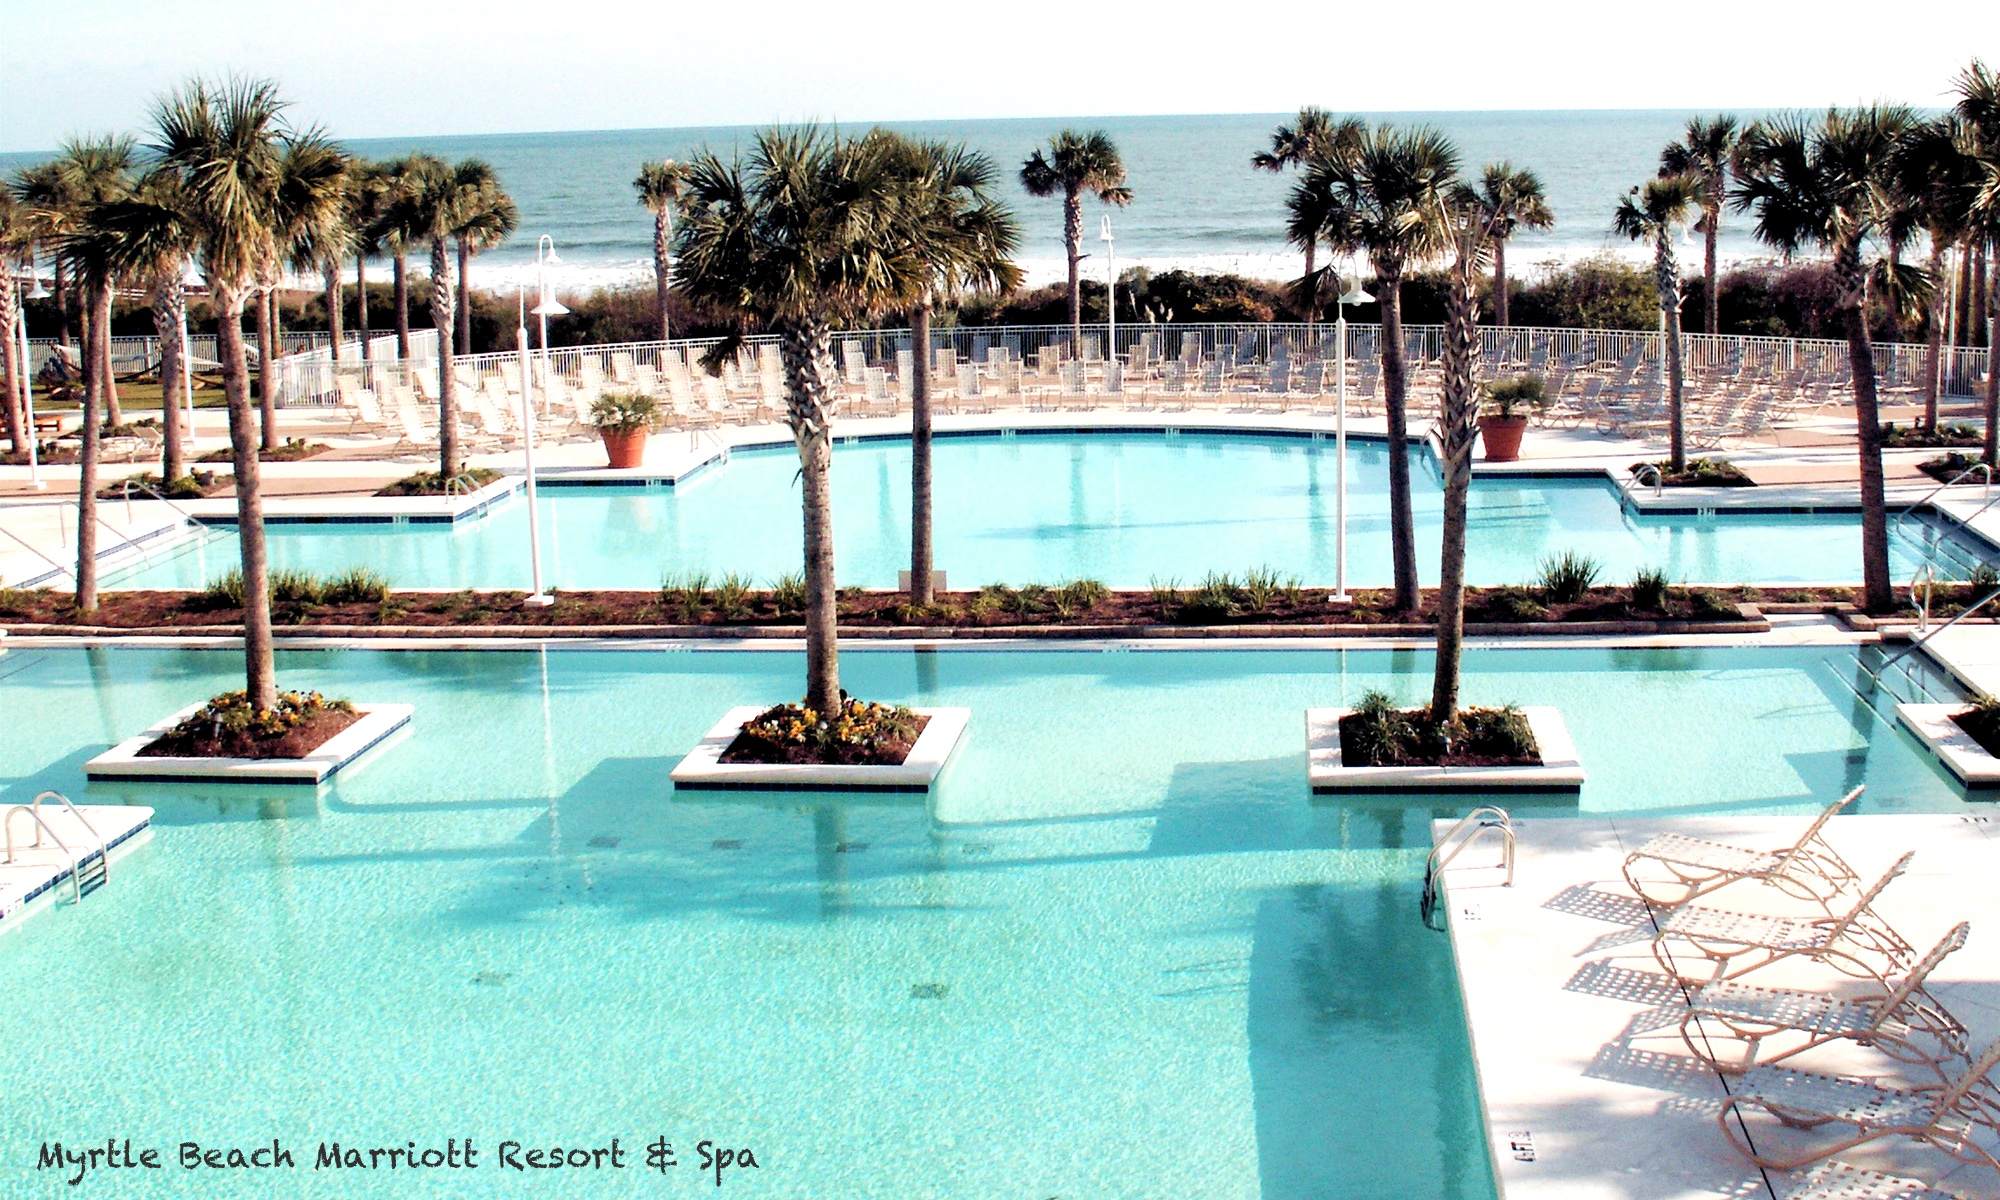 Myrtle Beach Marriott